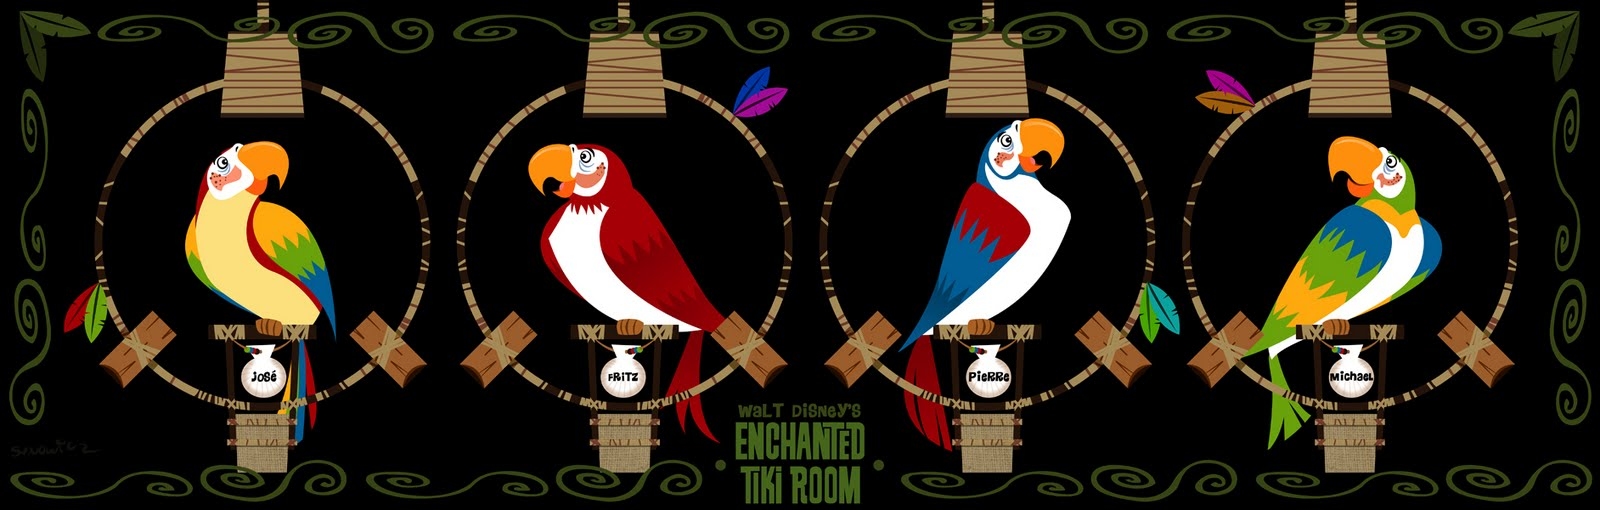 Featured Attraction Enchanted Tiki Room By Disney Club